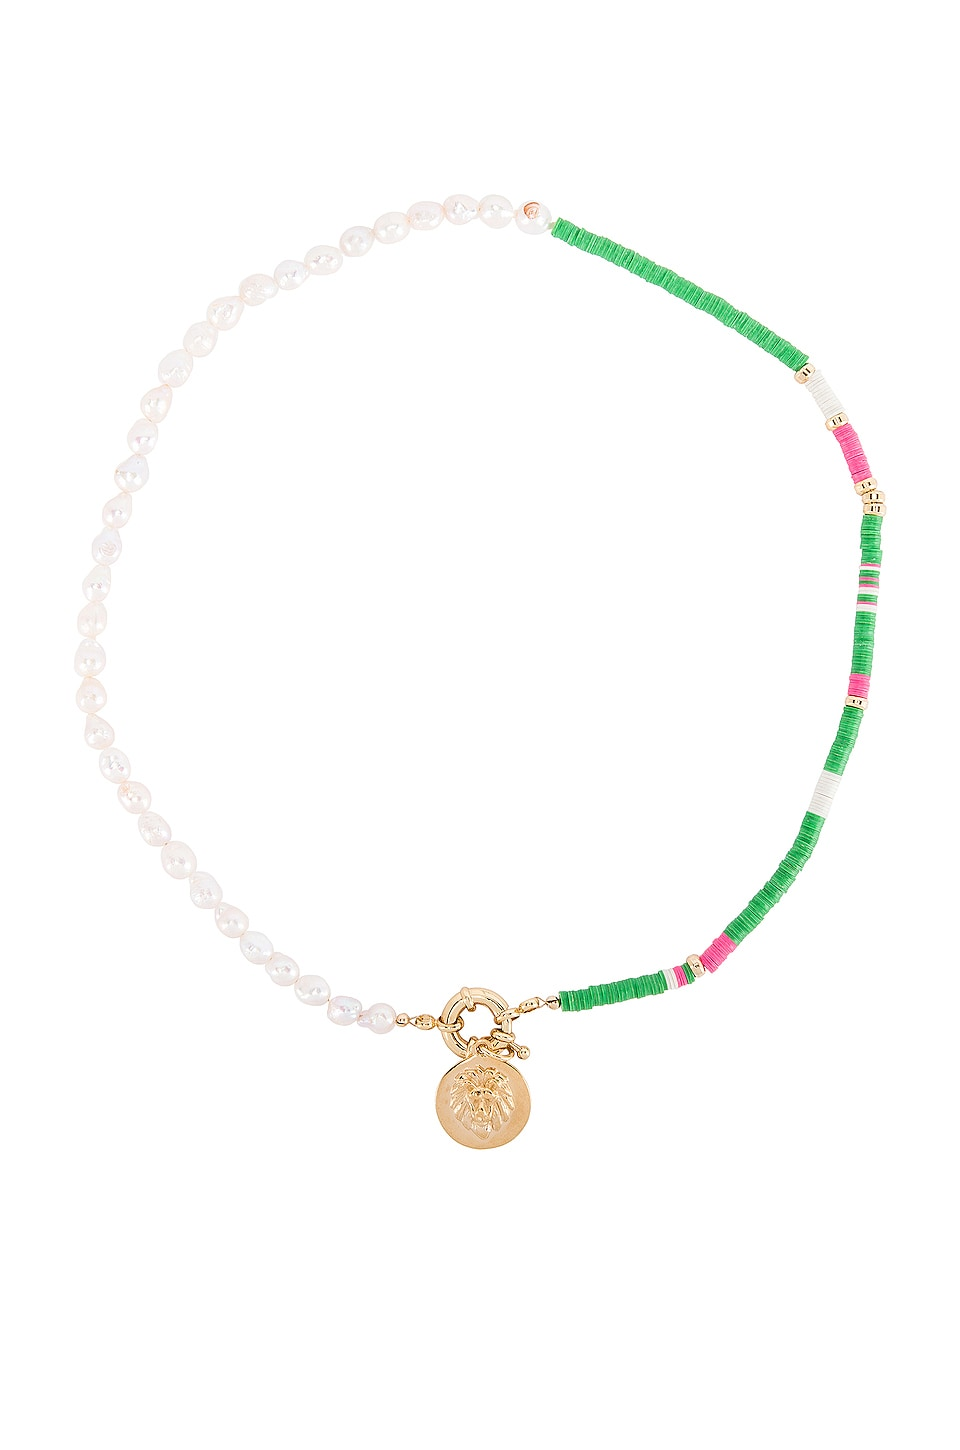 joolz by Martha Calvo Lioness Necklace in Kelly Green